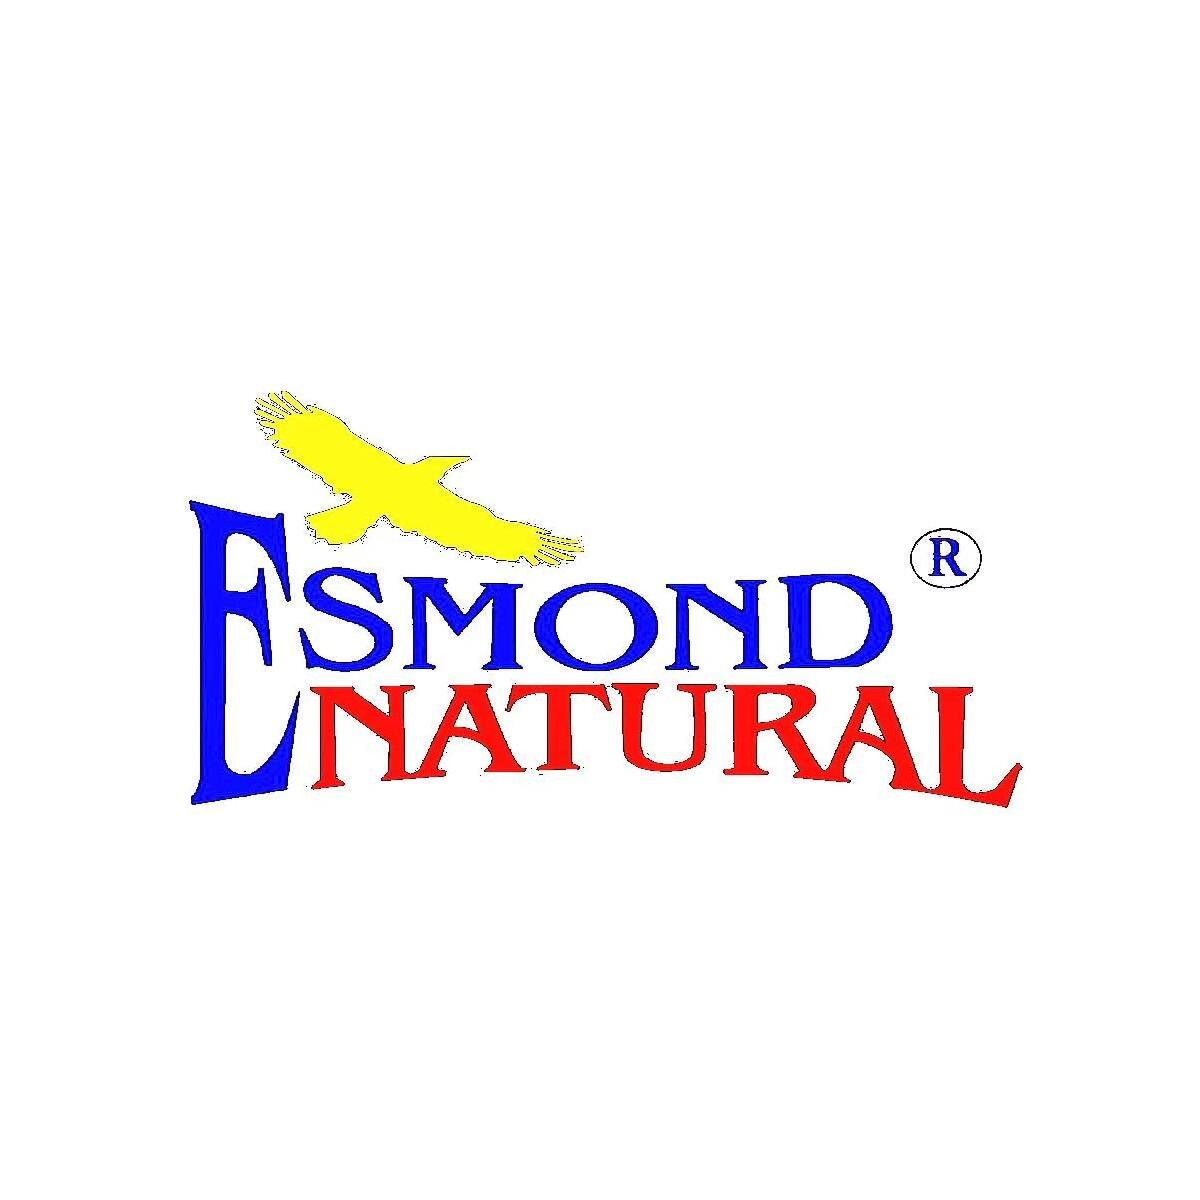 Esmond Natural: Children's Chewable Multivitamins with Vitamin C (Former Kiwi Fruit Complex), GMP, Natural Product Assn Certified, Made in USA-60 Tablets